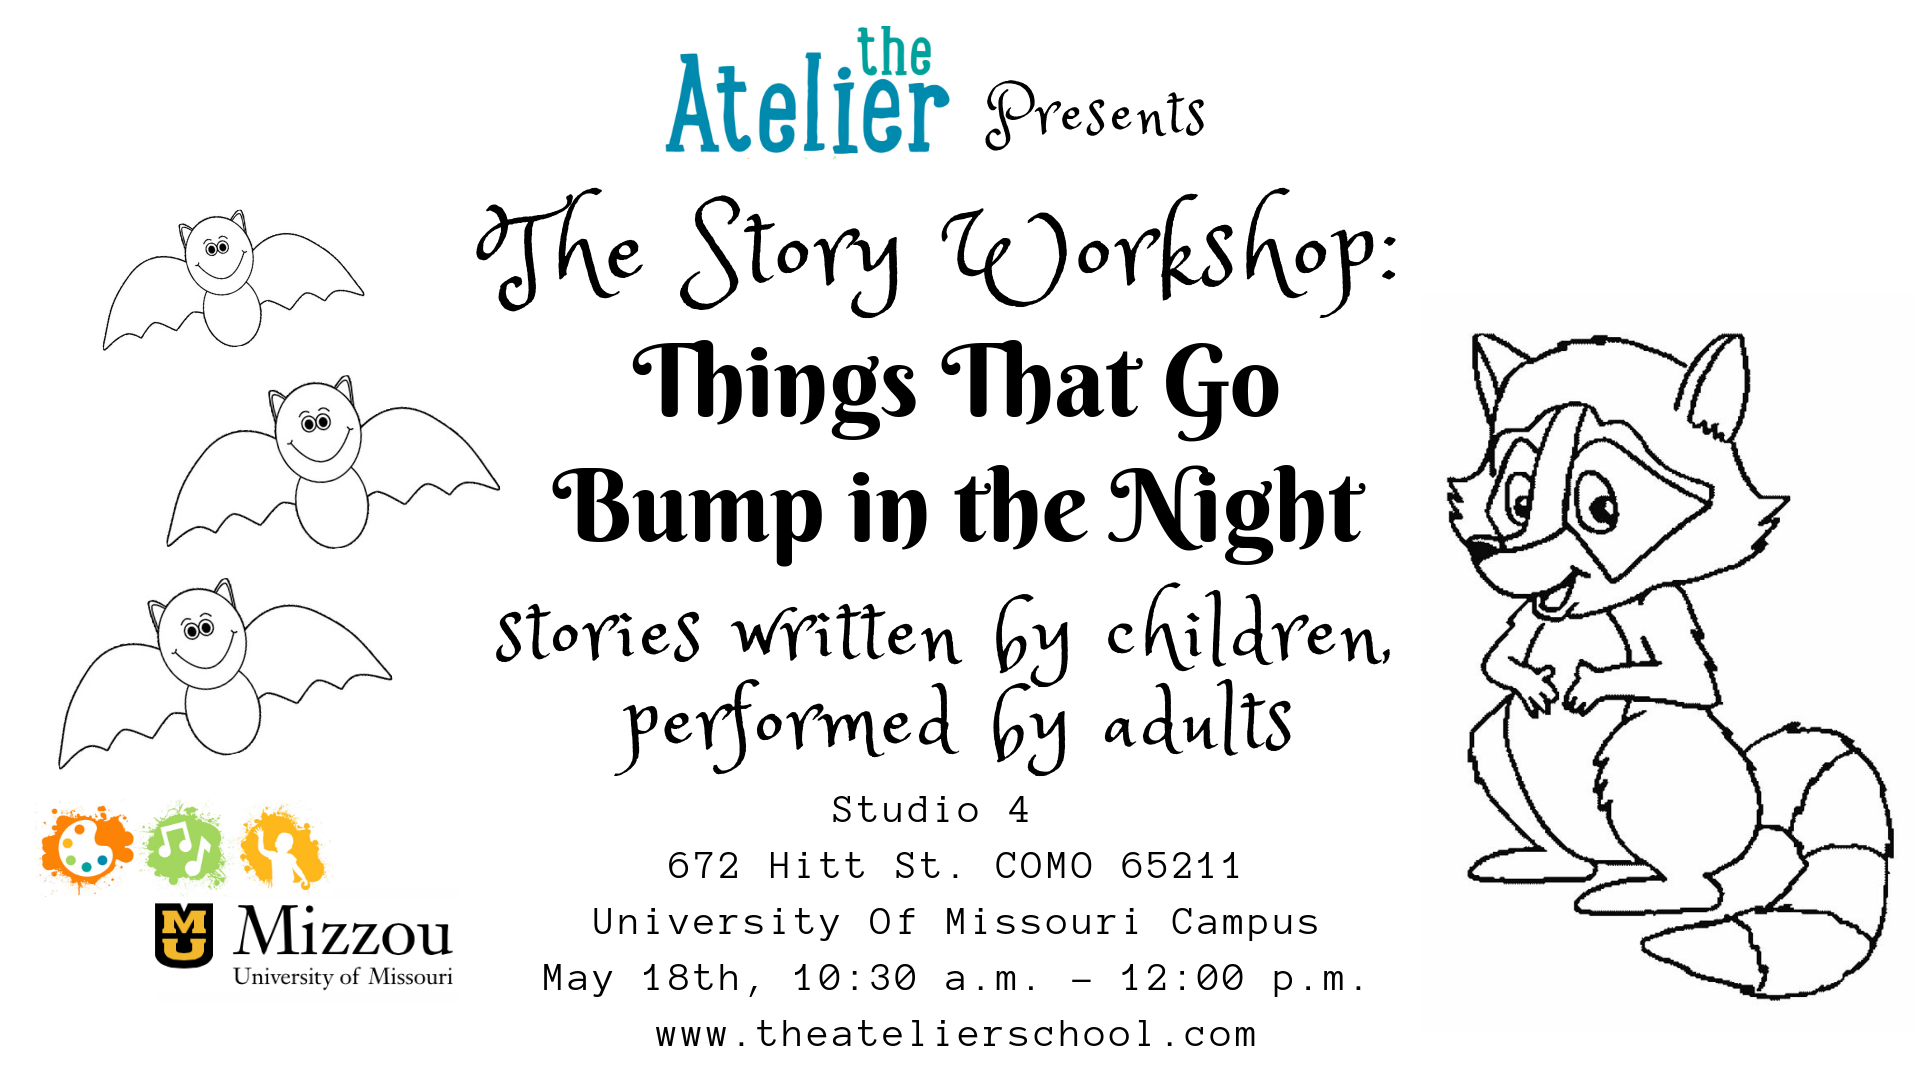 Story Workshop: Things That Go Bump in the Night